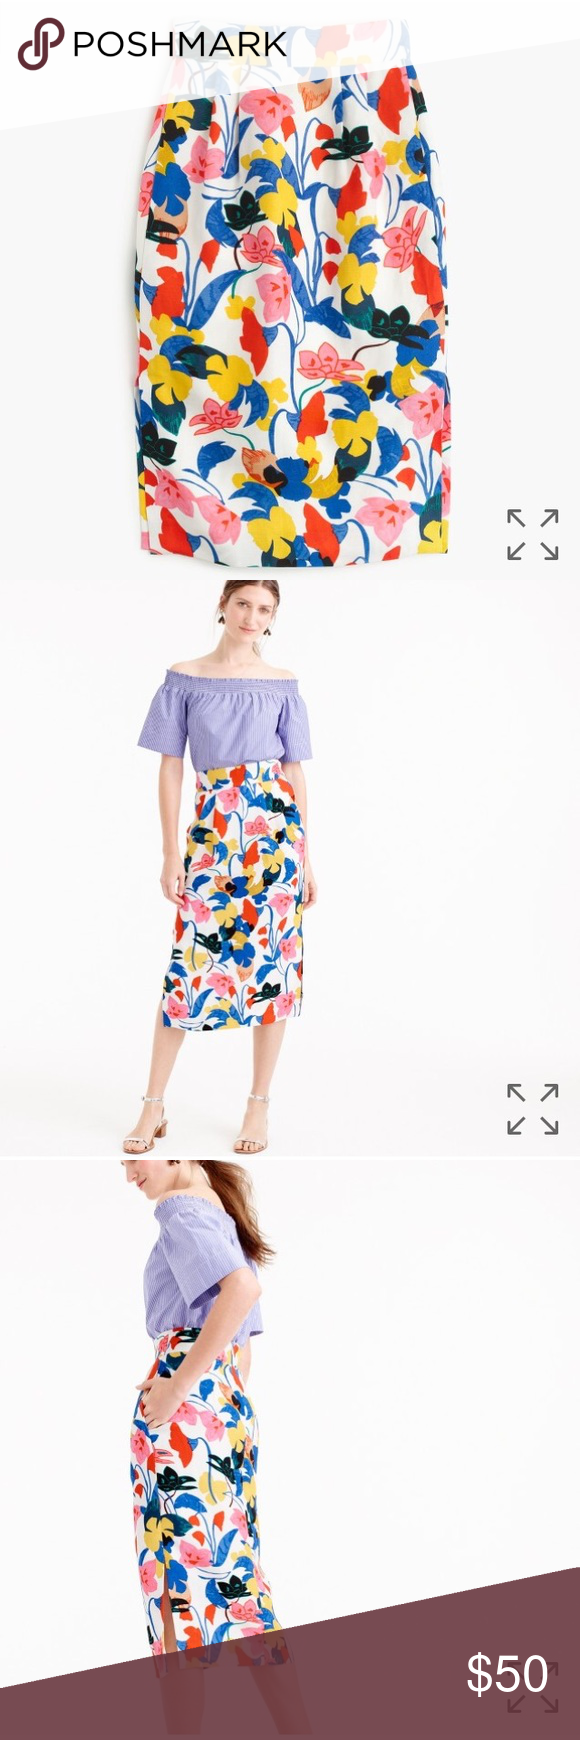 JCrew Print Pencil Skirt The ultimate summer skirt—with pockets!—in a vibrant primary-colored floral. The secret to its brilliance is our soft lyocell-linen fabric that beautifully holds color. Designed to flatteringly fit at the smallest part of the waist, the silhouette also features side slits for the perfect amount of moveability. So basically, it's a dream skirt for work and weekends. Sized as 12 but cut smaller. Price is firm. J. Crew Skirts Midi